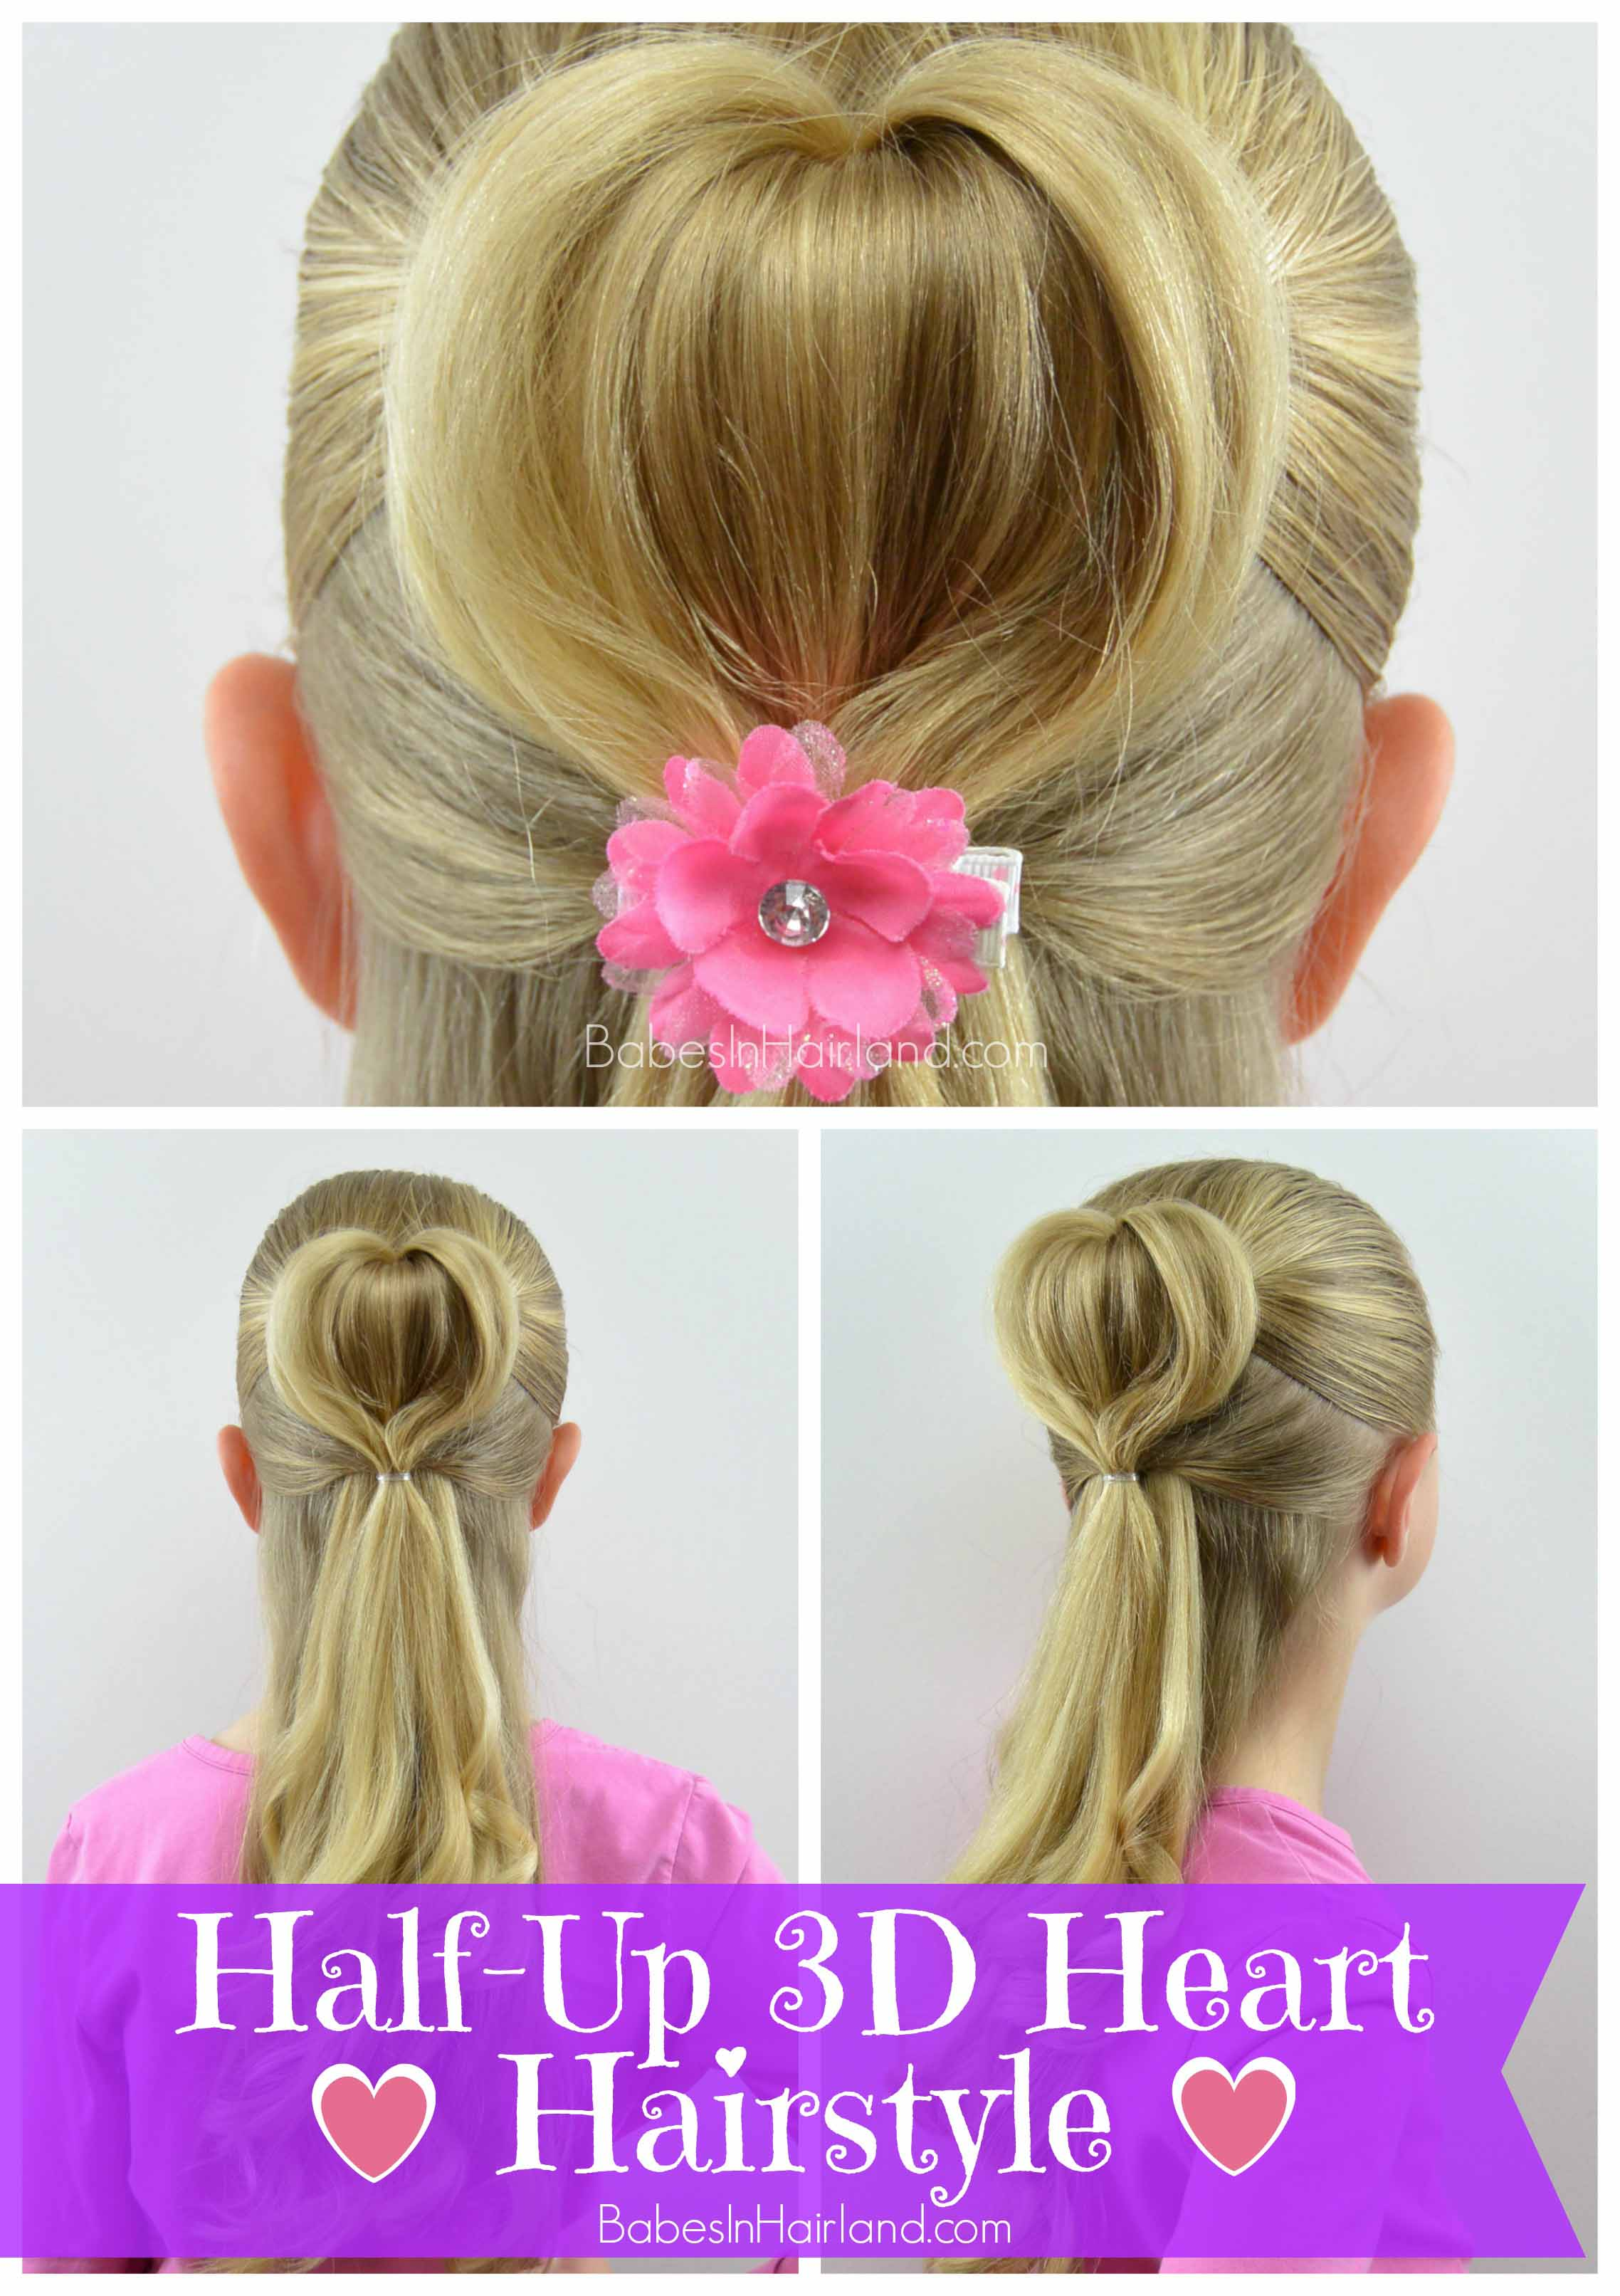 3d heart hairstyle valentine's